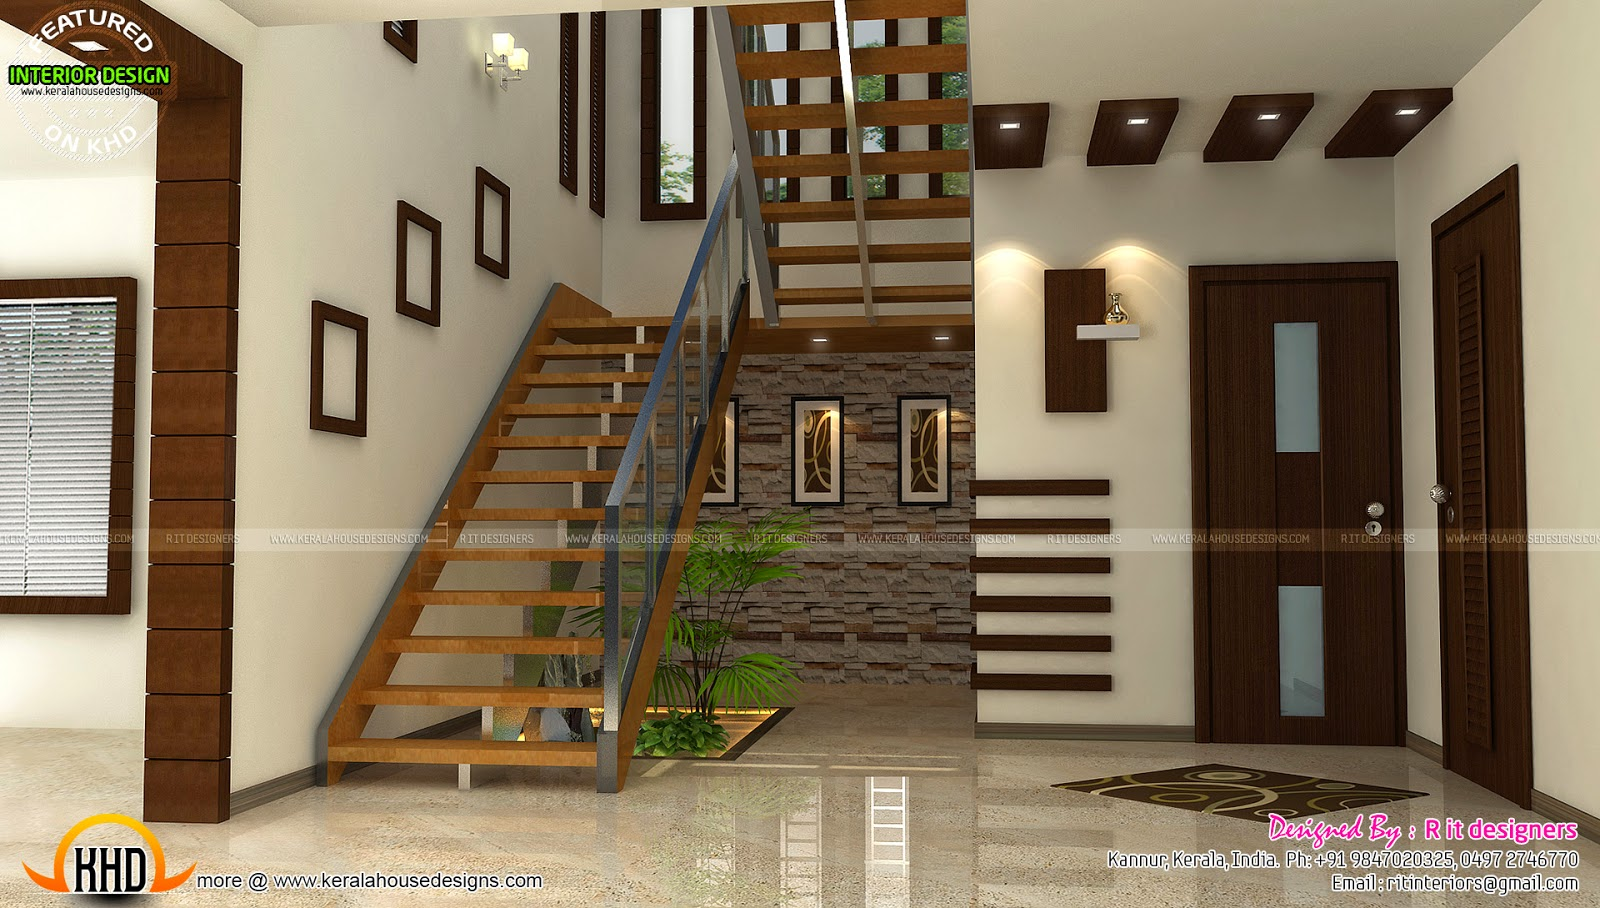 Staircase bedroom dining interiors kerala home design for House design inside